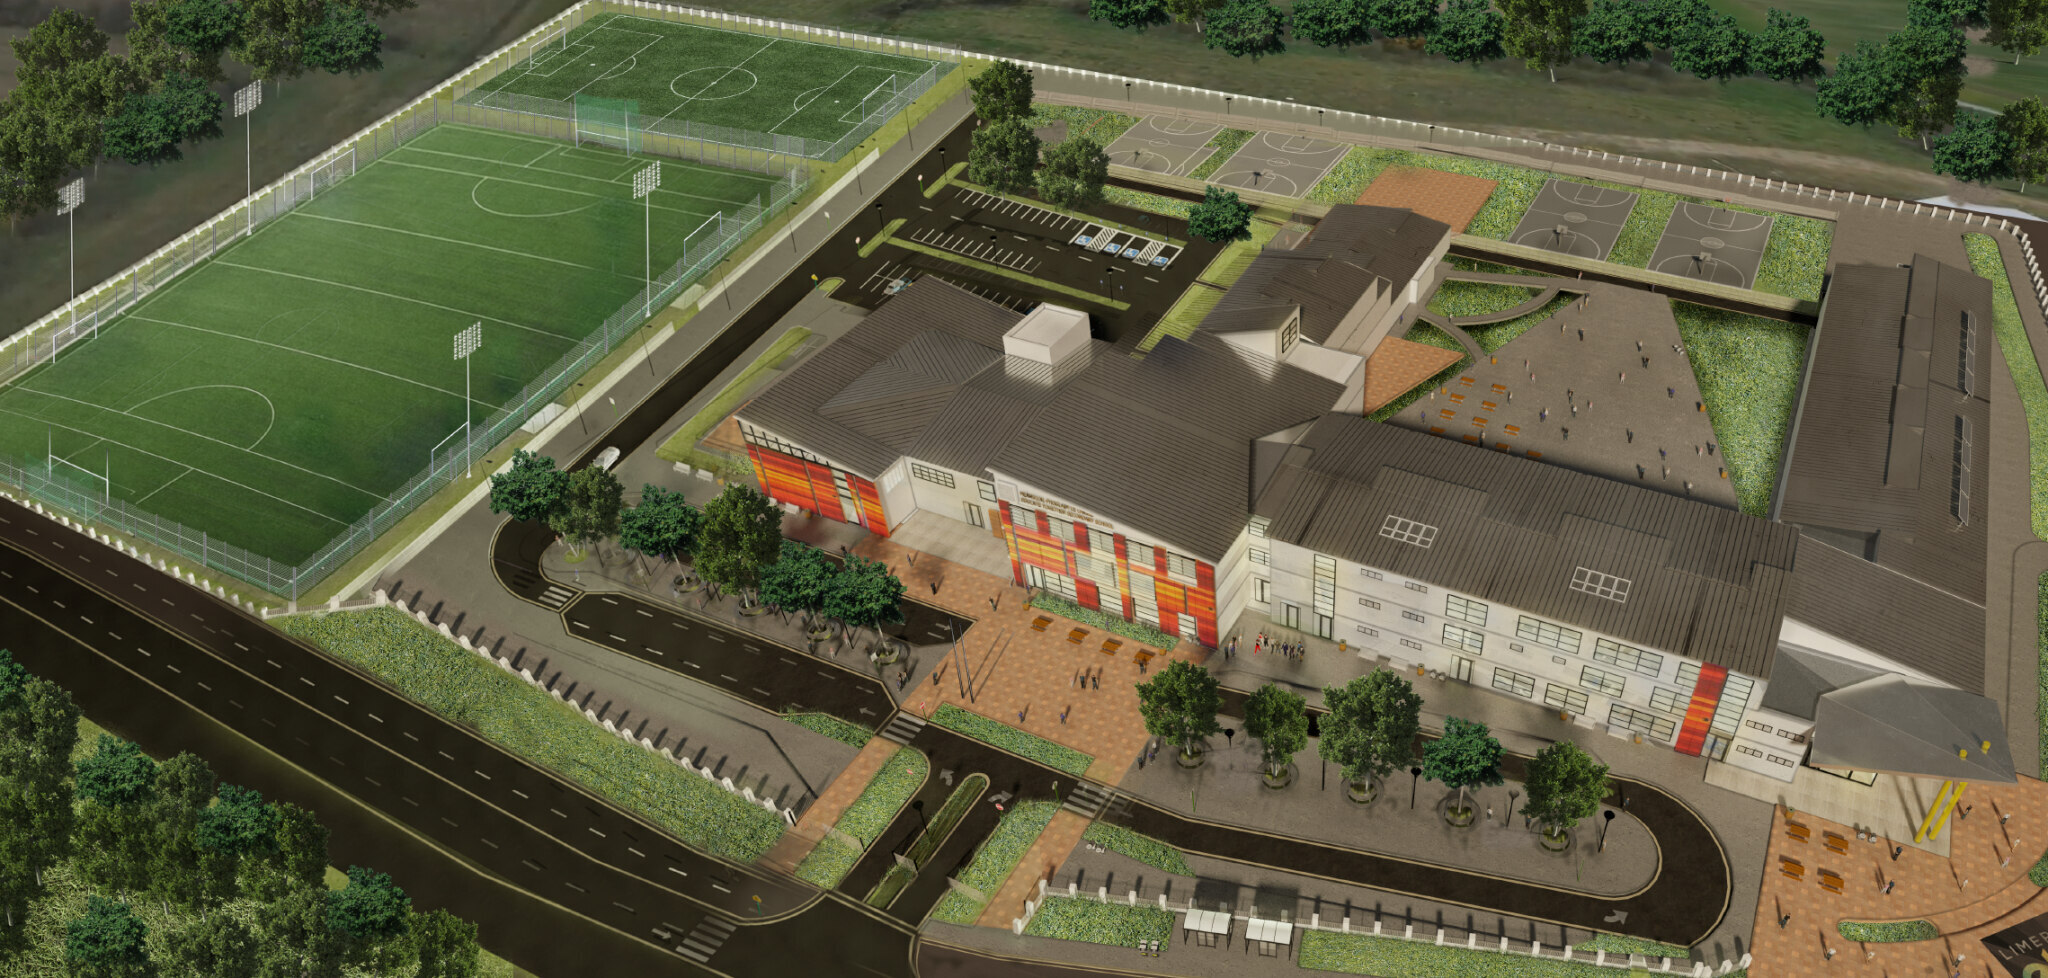 Limerick School Funding Limerick School Funding - a large number of Limerick schools will benefit from National Development Plan funding, including Limerick Educate Together Secondary School, whose new Castletroy campus is pictured above.